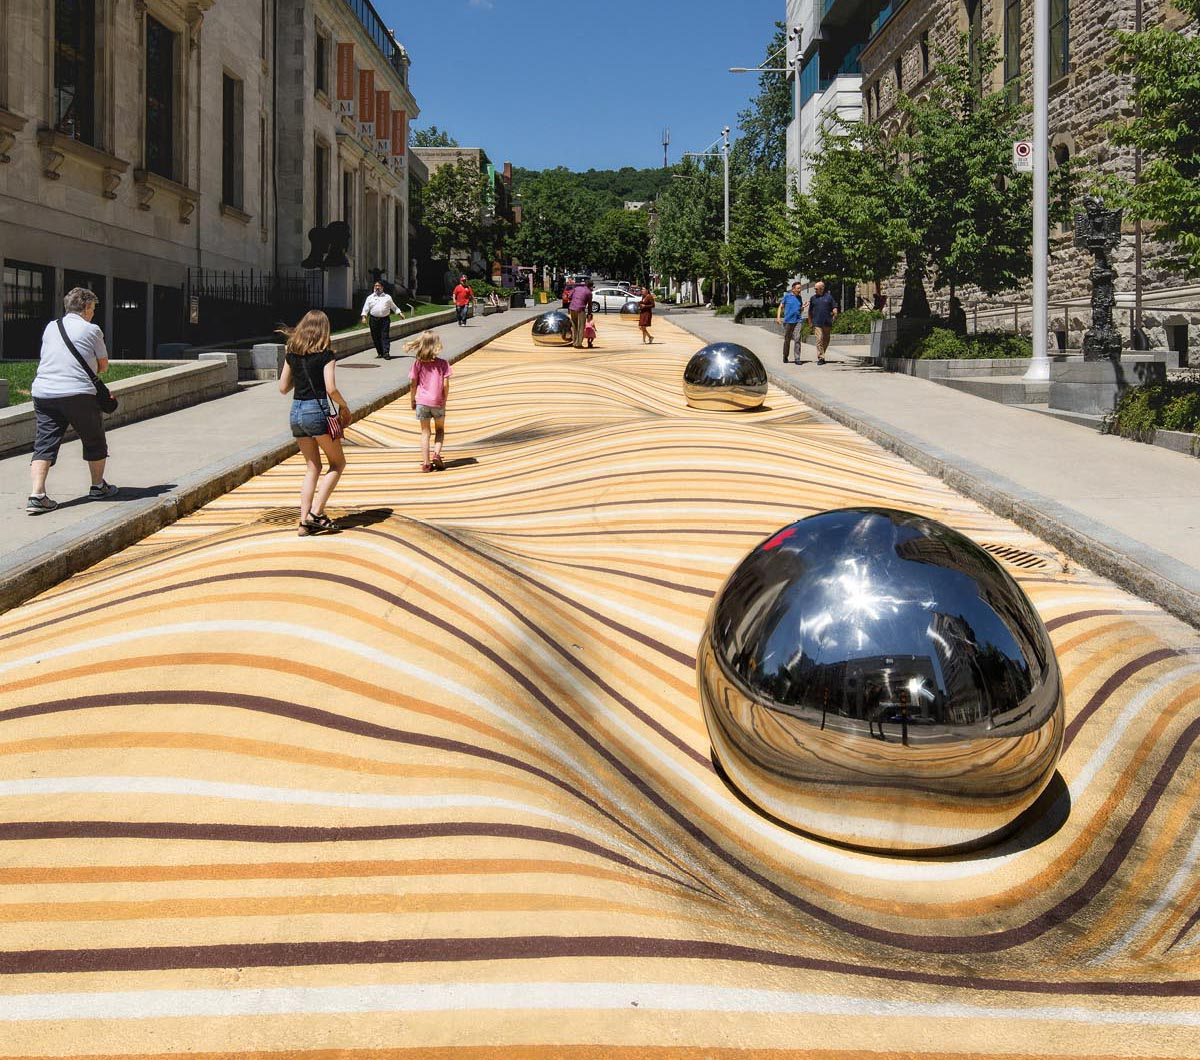 A public mural in Montreal that manipulates the street surface and creates the illusion of large ripples.